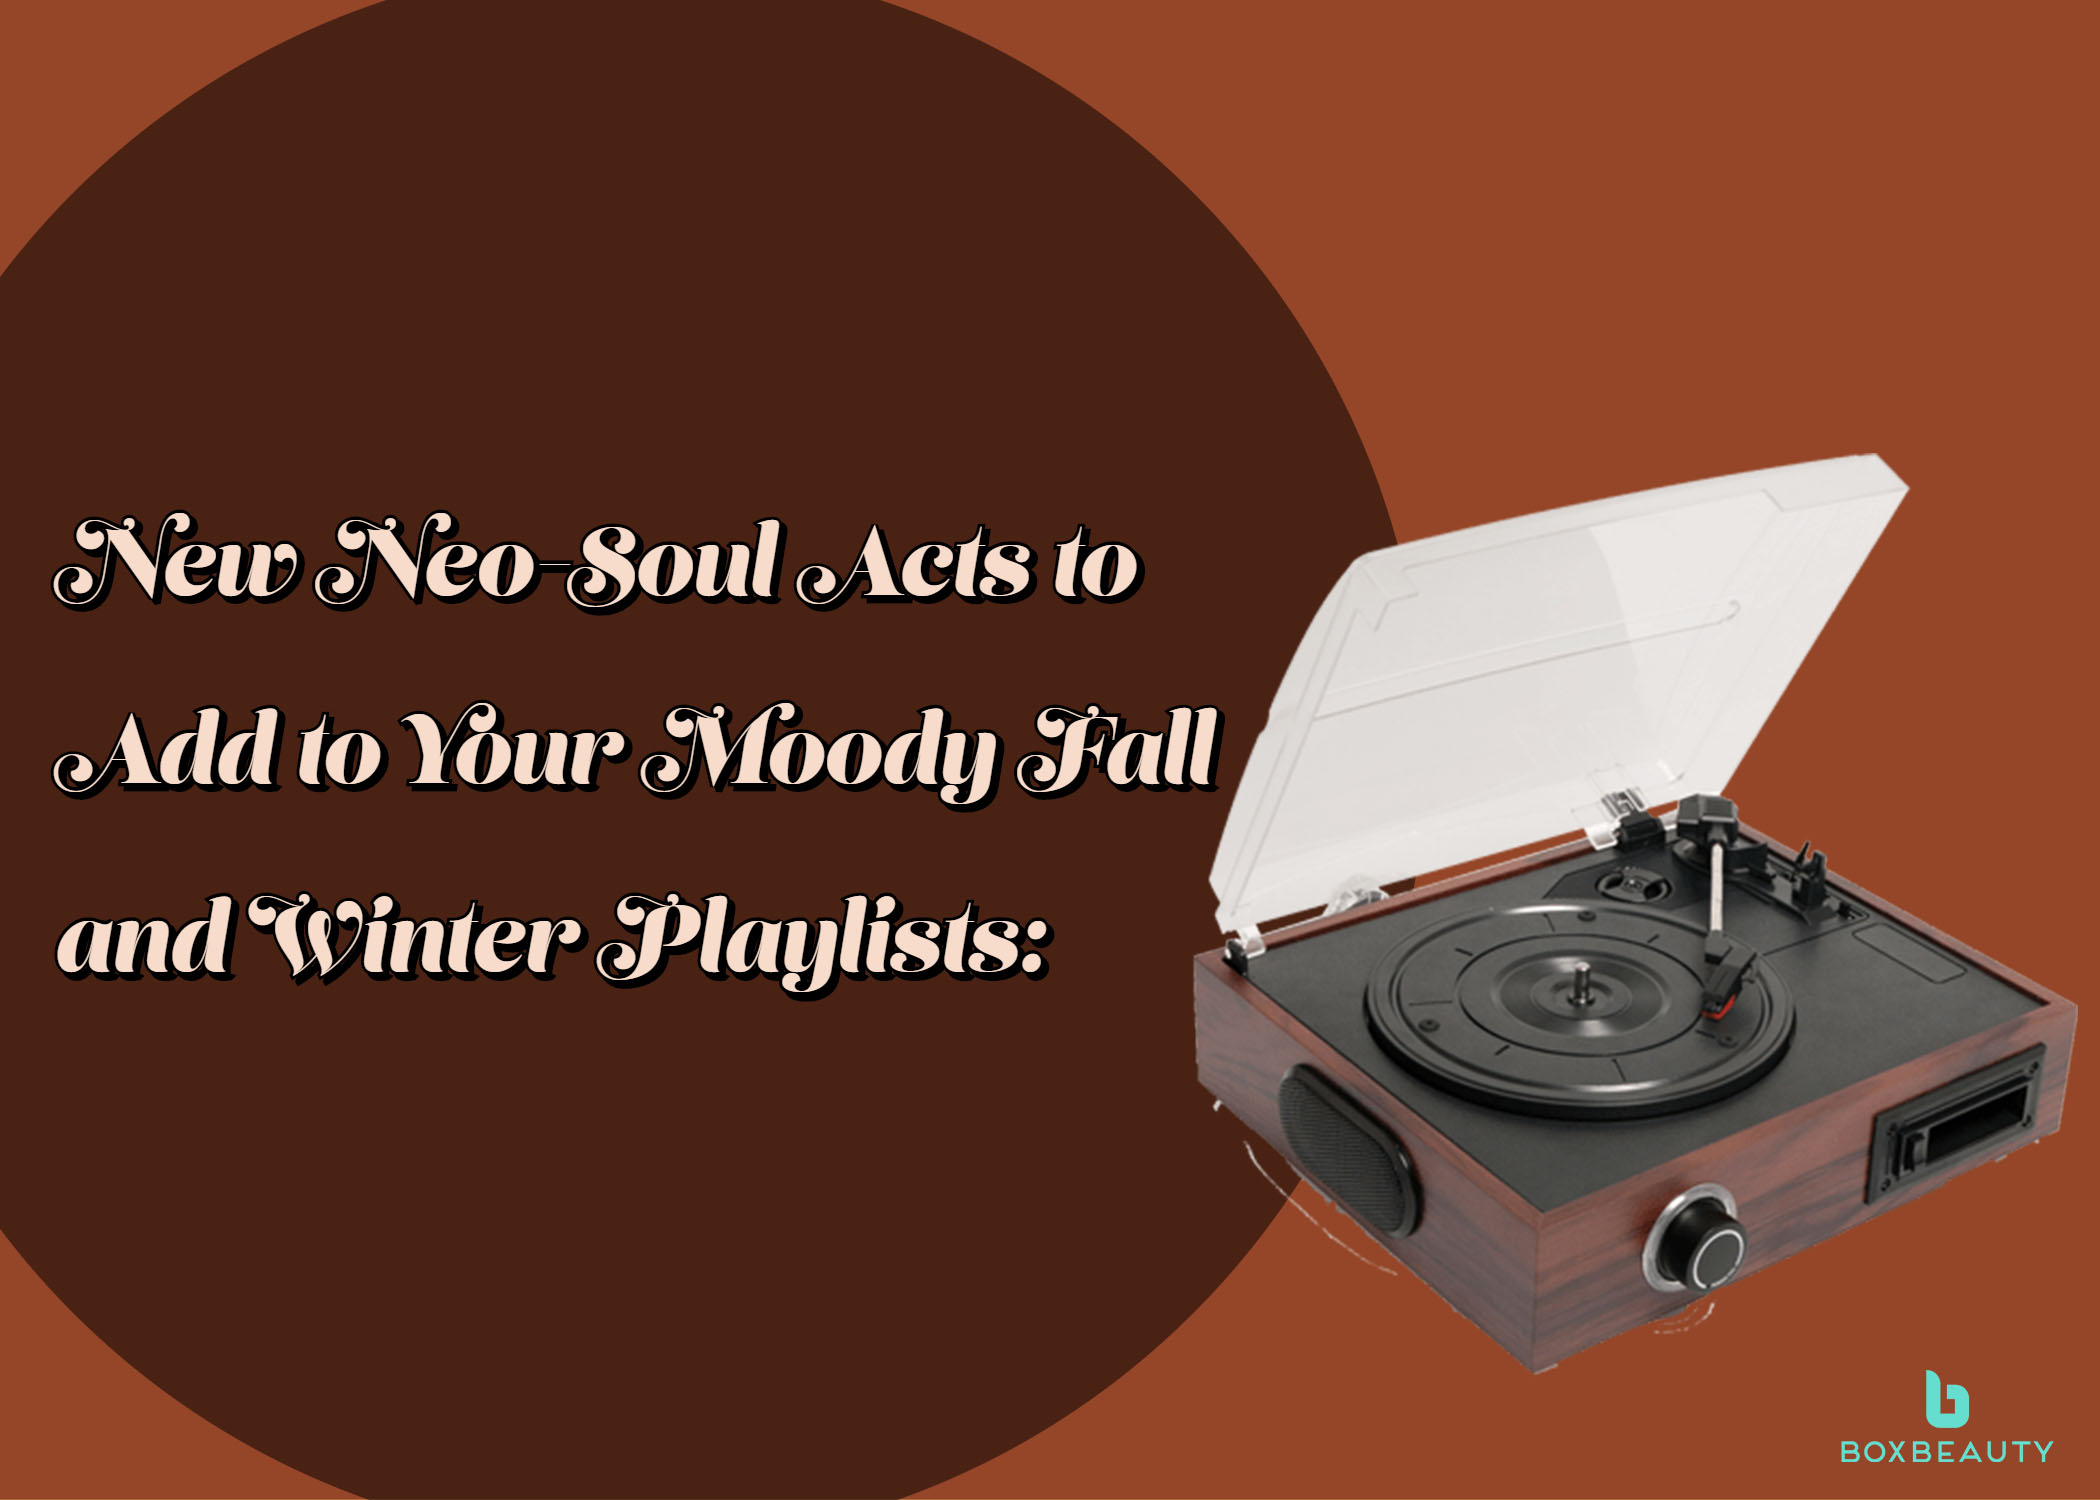 New Neo-Soul Acts to Add to Your Moody Fall and Winter Playlists